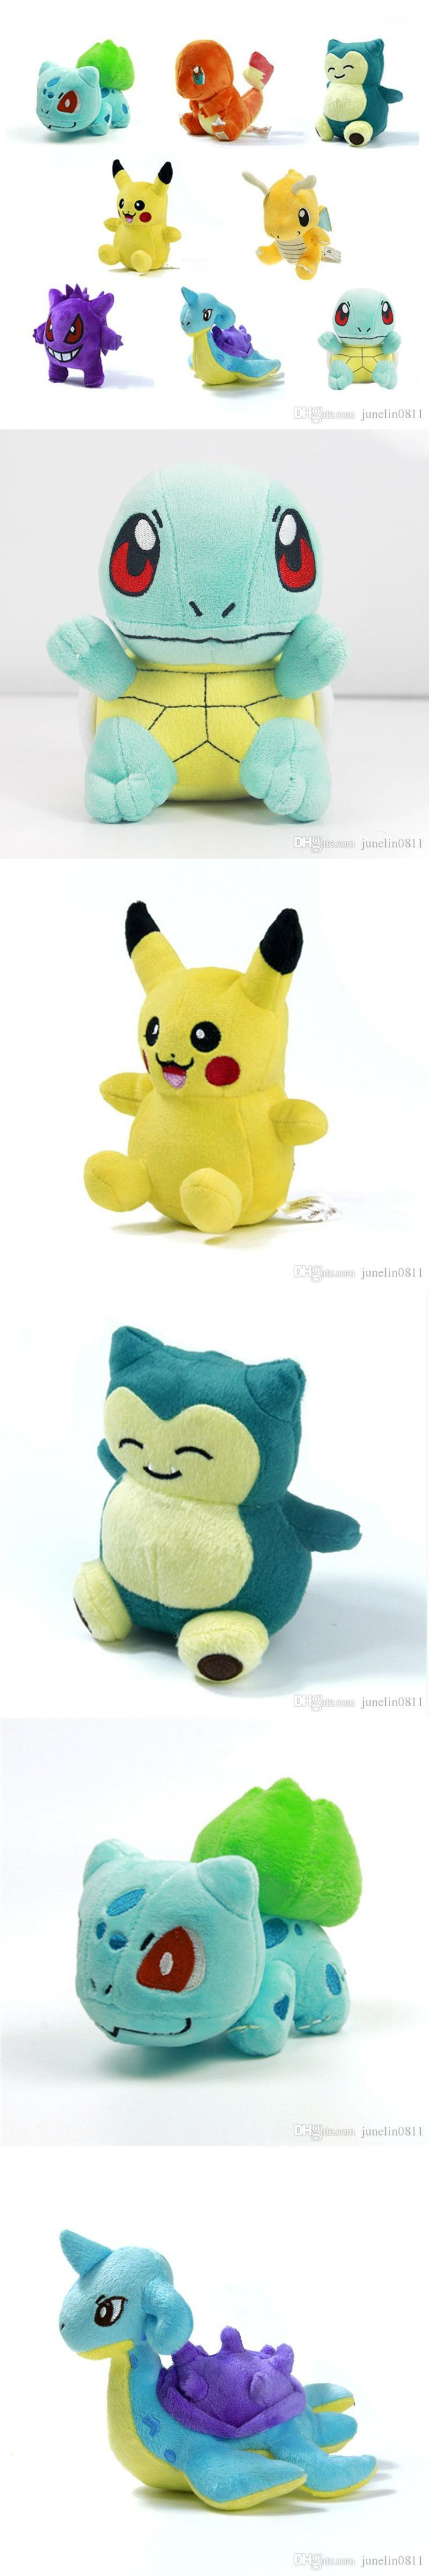 Best 25 Pokemon dolls ideas on Pinterest